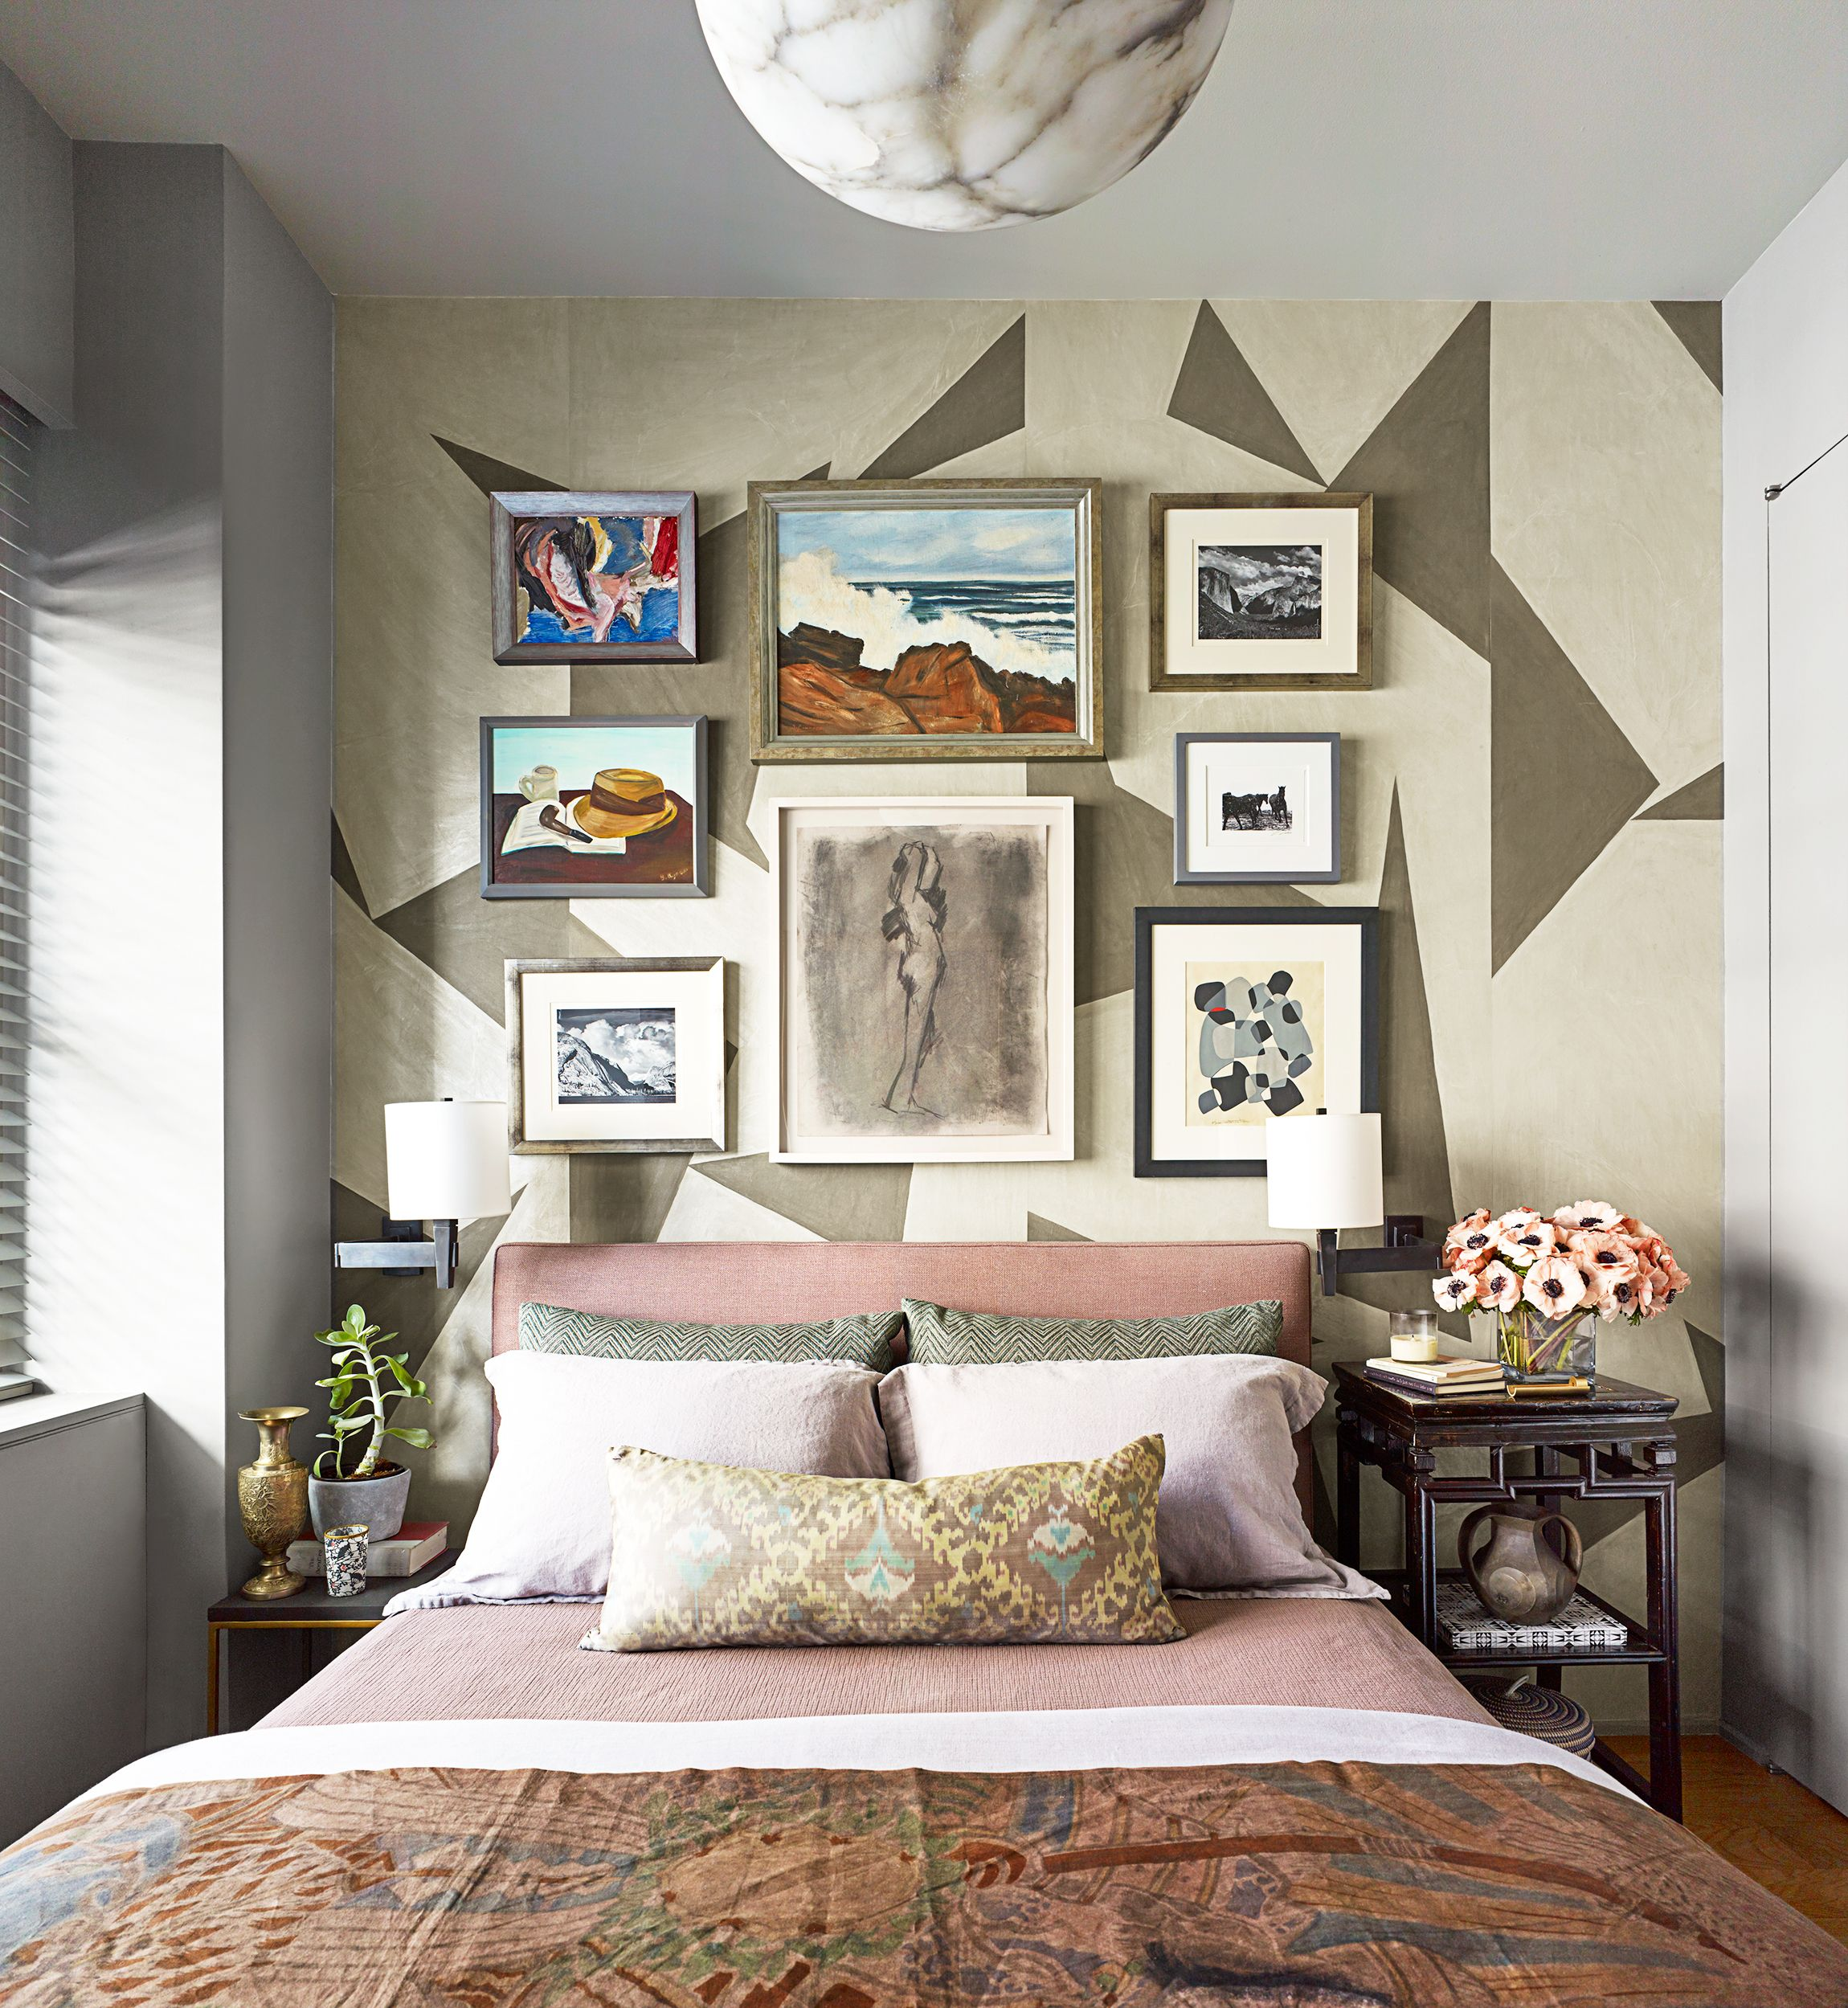 25 Small Bedroom Design Ideas - How to Decorate a Small ... on Ideas For Small Rooms  id=66863